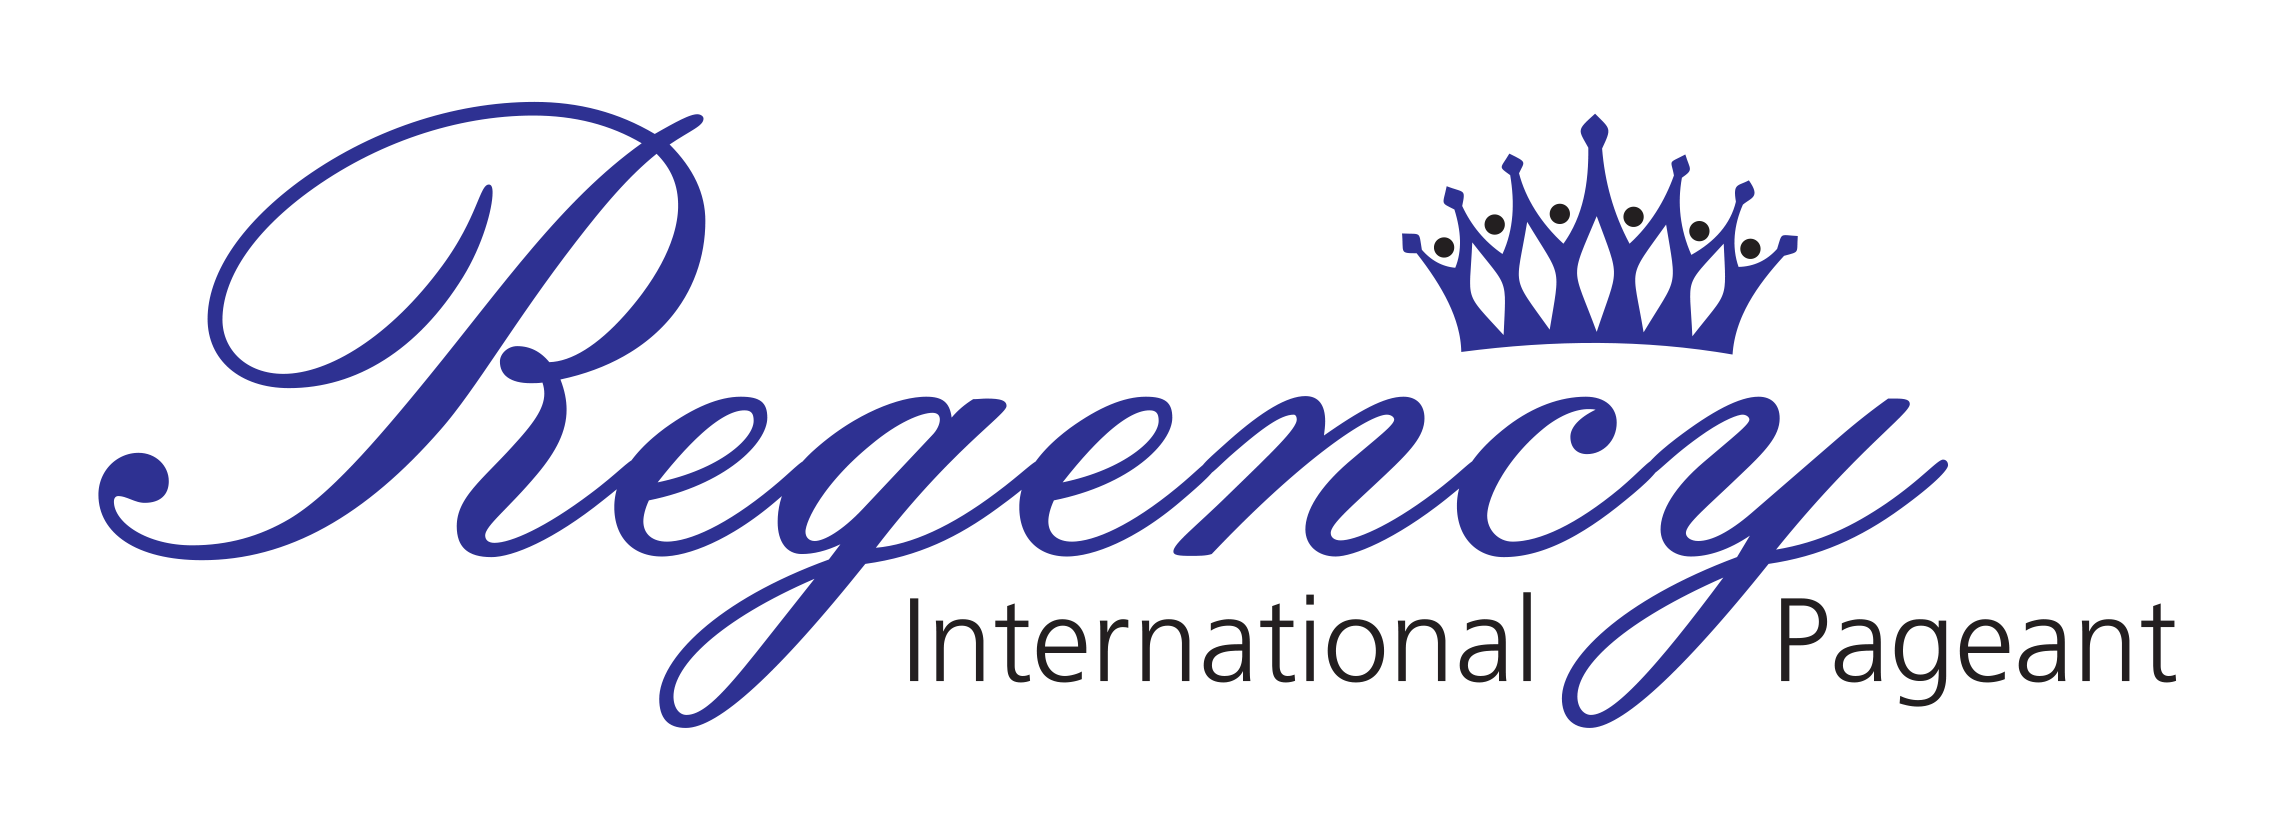 Louisiana Regency International Beauty Pageant will be on April 27, 2019 in Lafayette, LA. The Host hotel will be the Doubletree by Hilton